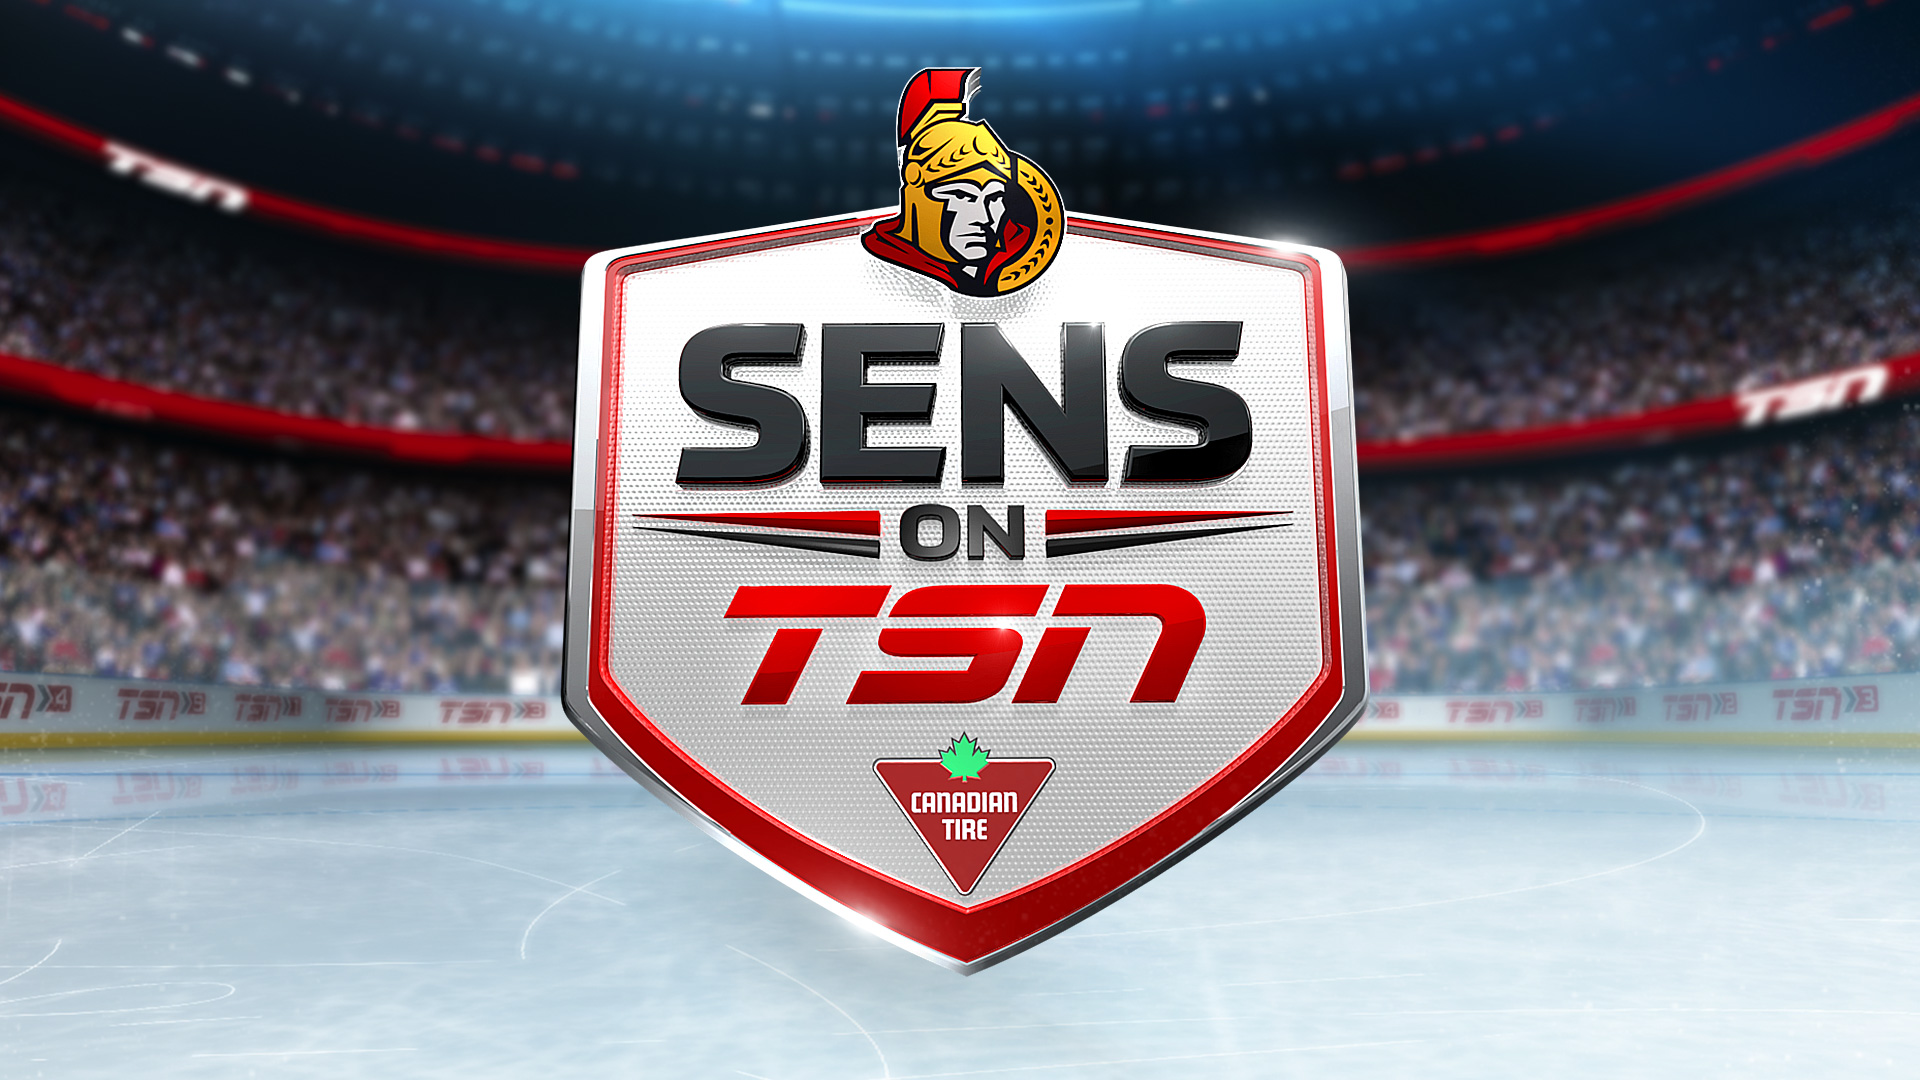 Canadian Tire Senators Hockey on TSN